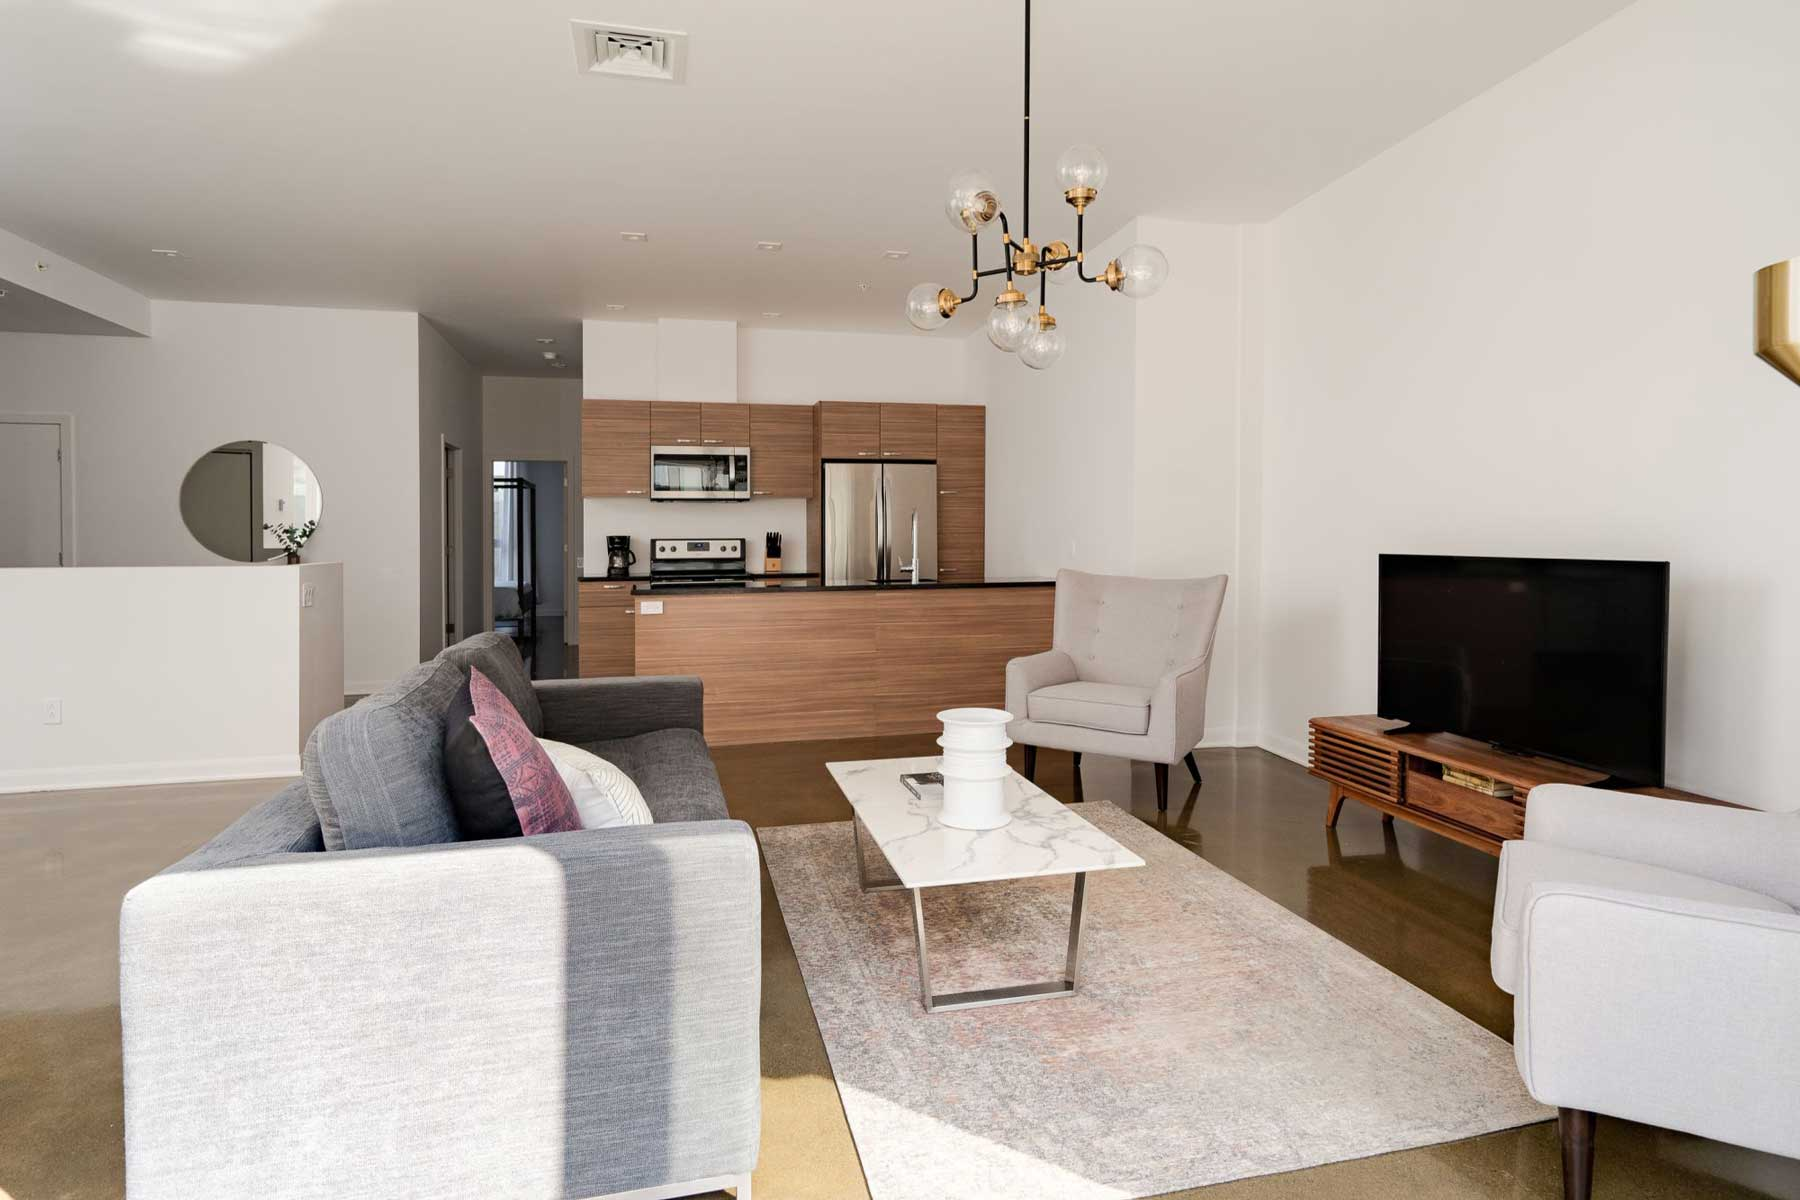 Living room and kitchen Sonder rental in Montreal